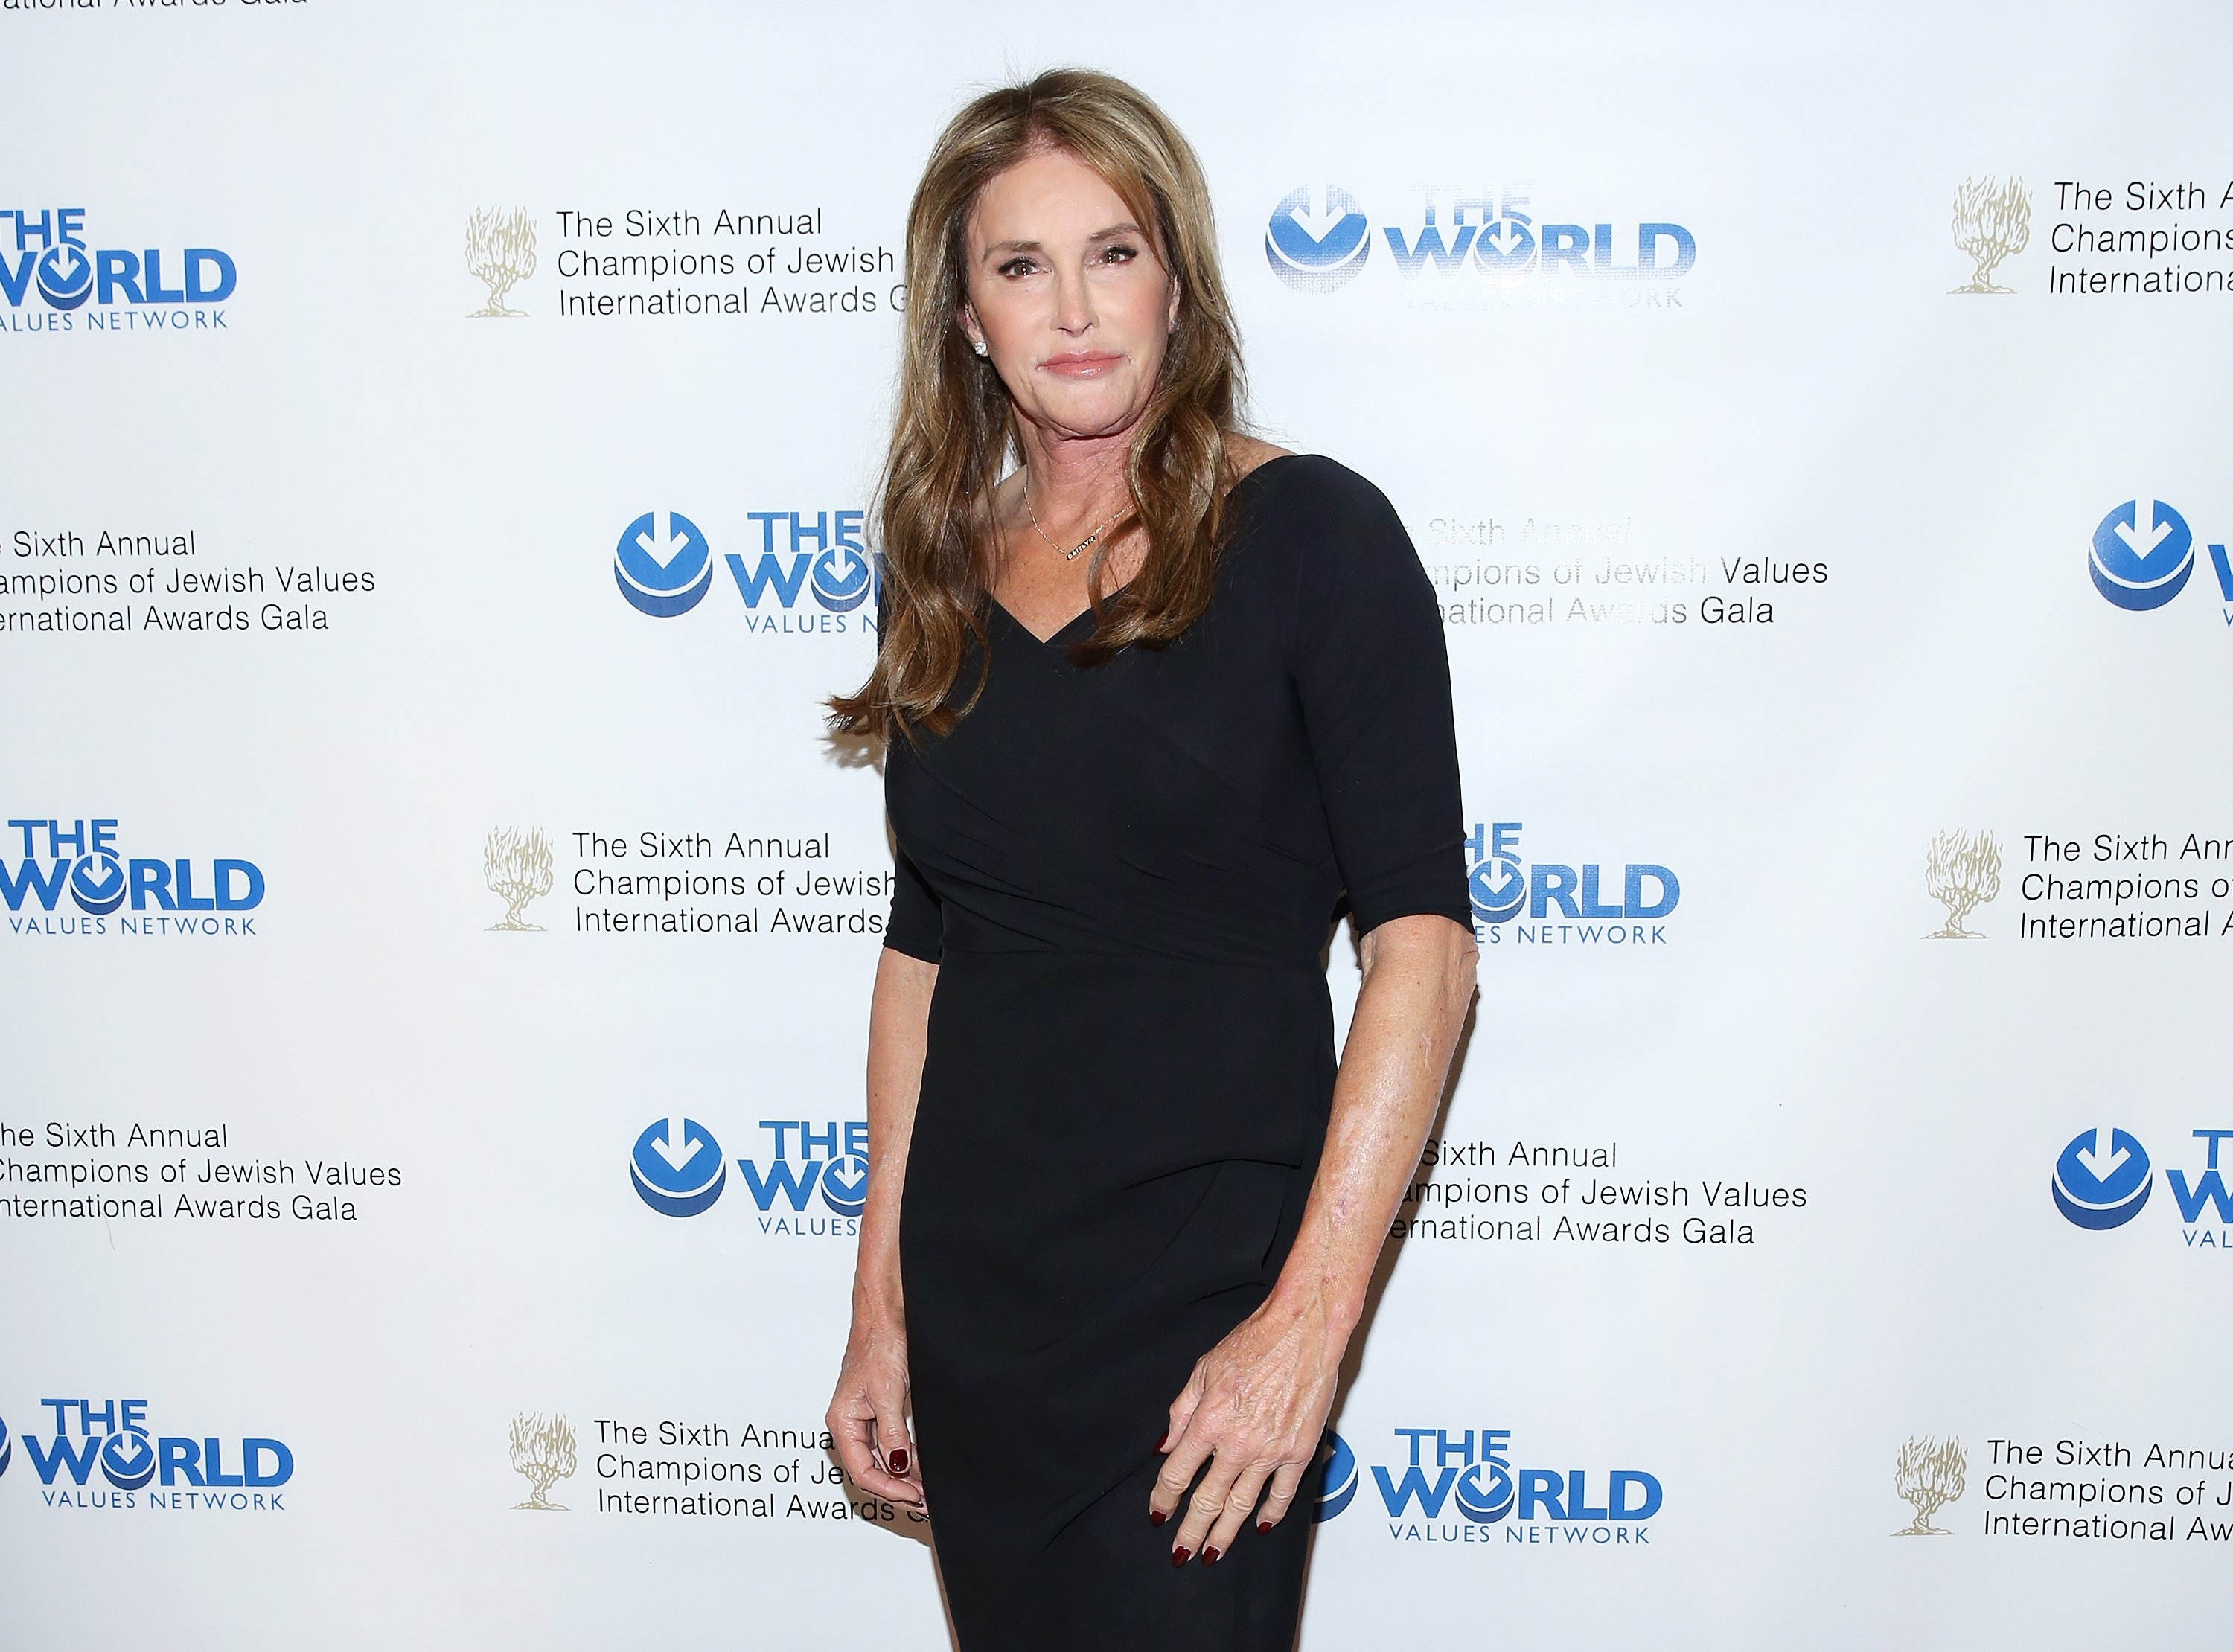 Caitlyn Jenner attends the 2018 World Values Network Champions of Jewish Values Awards Gala at The Plaza Hotel on March 8, 2018, in New York City. | Source: Getty Images.